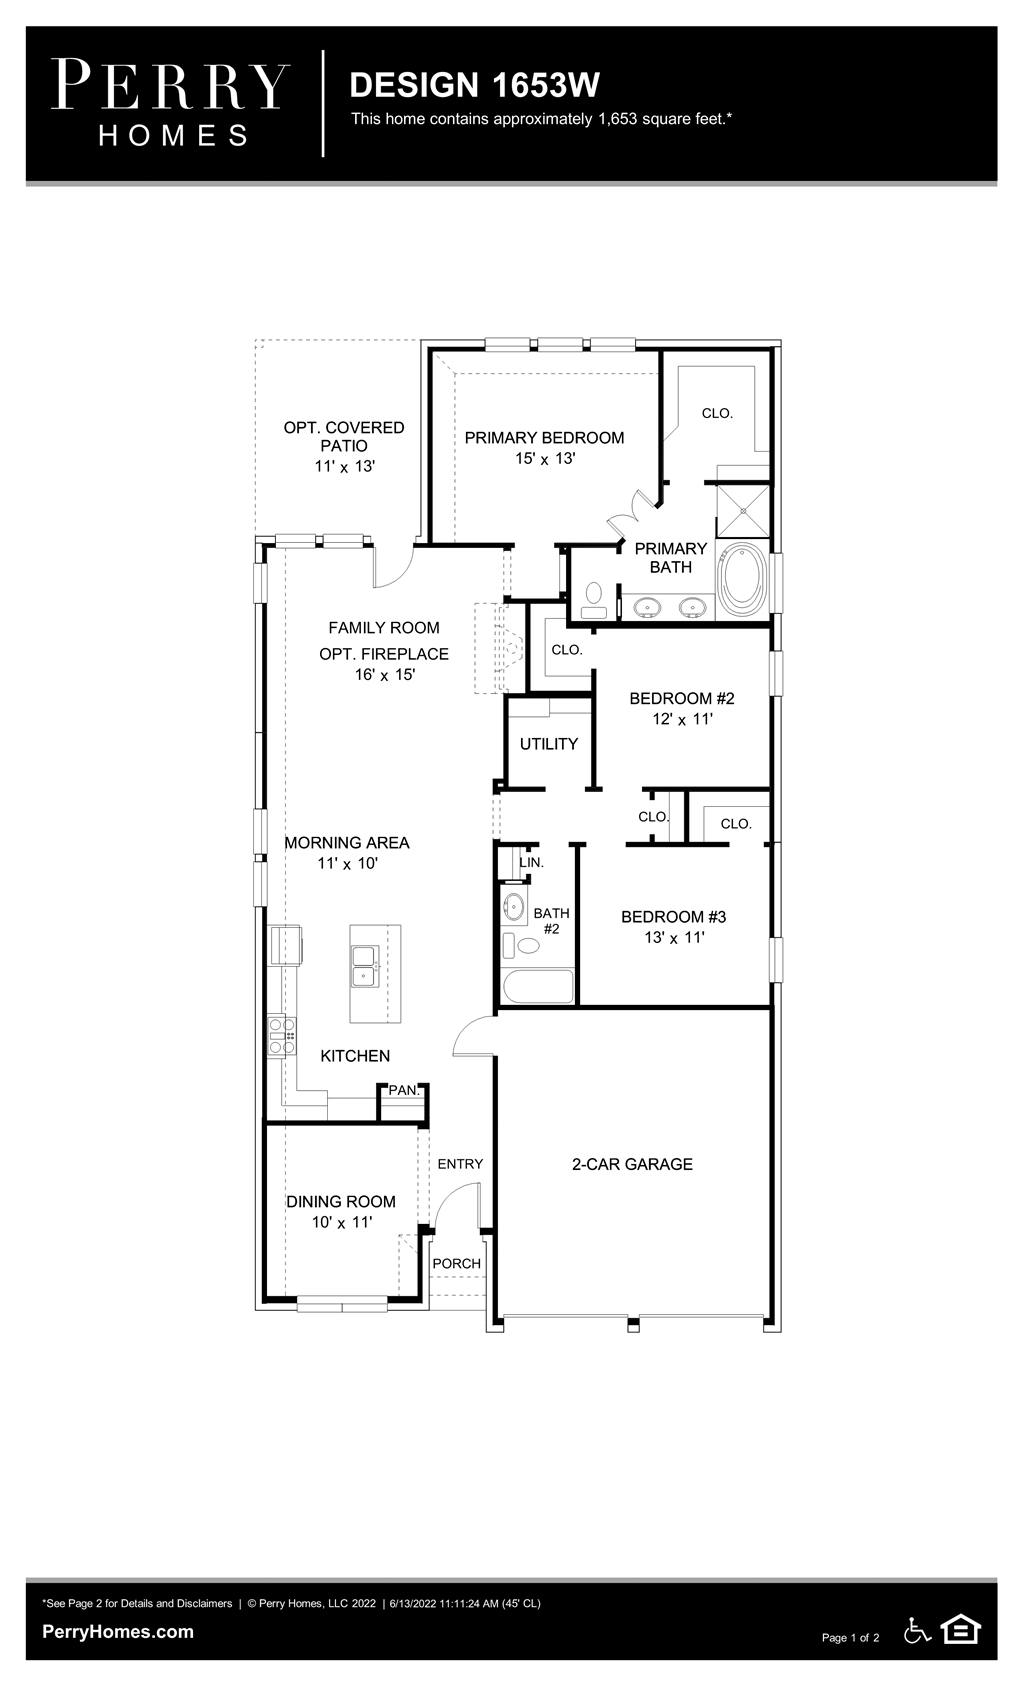 Floor Plan for 1653W